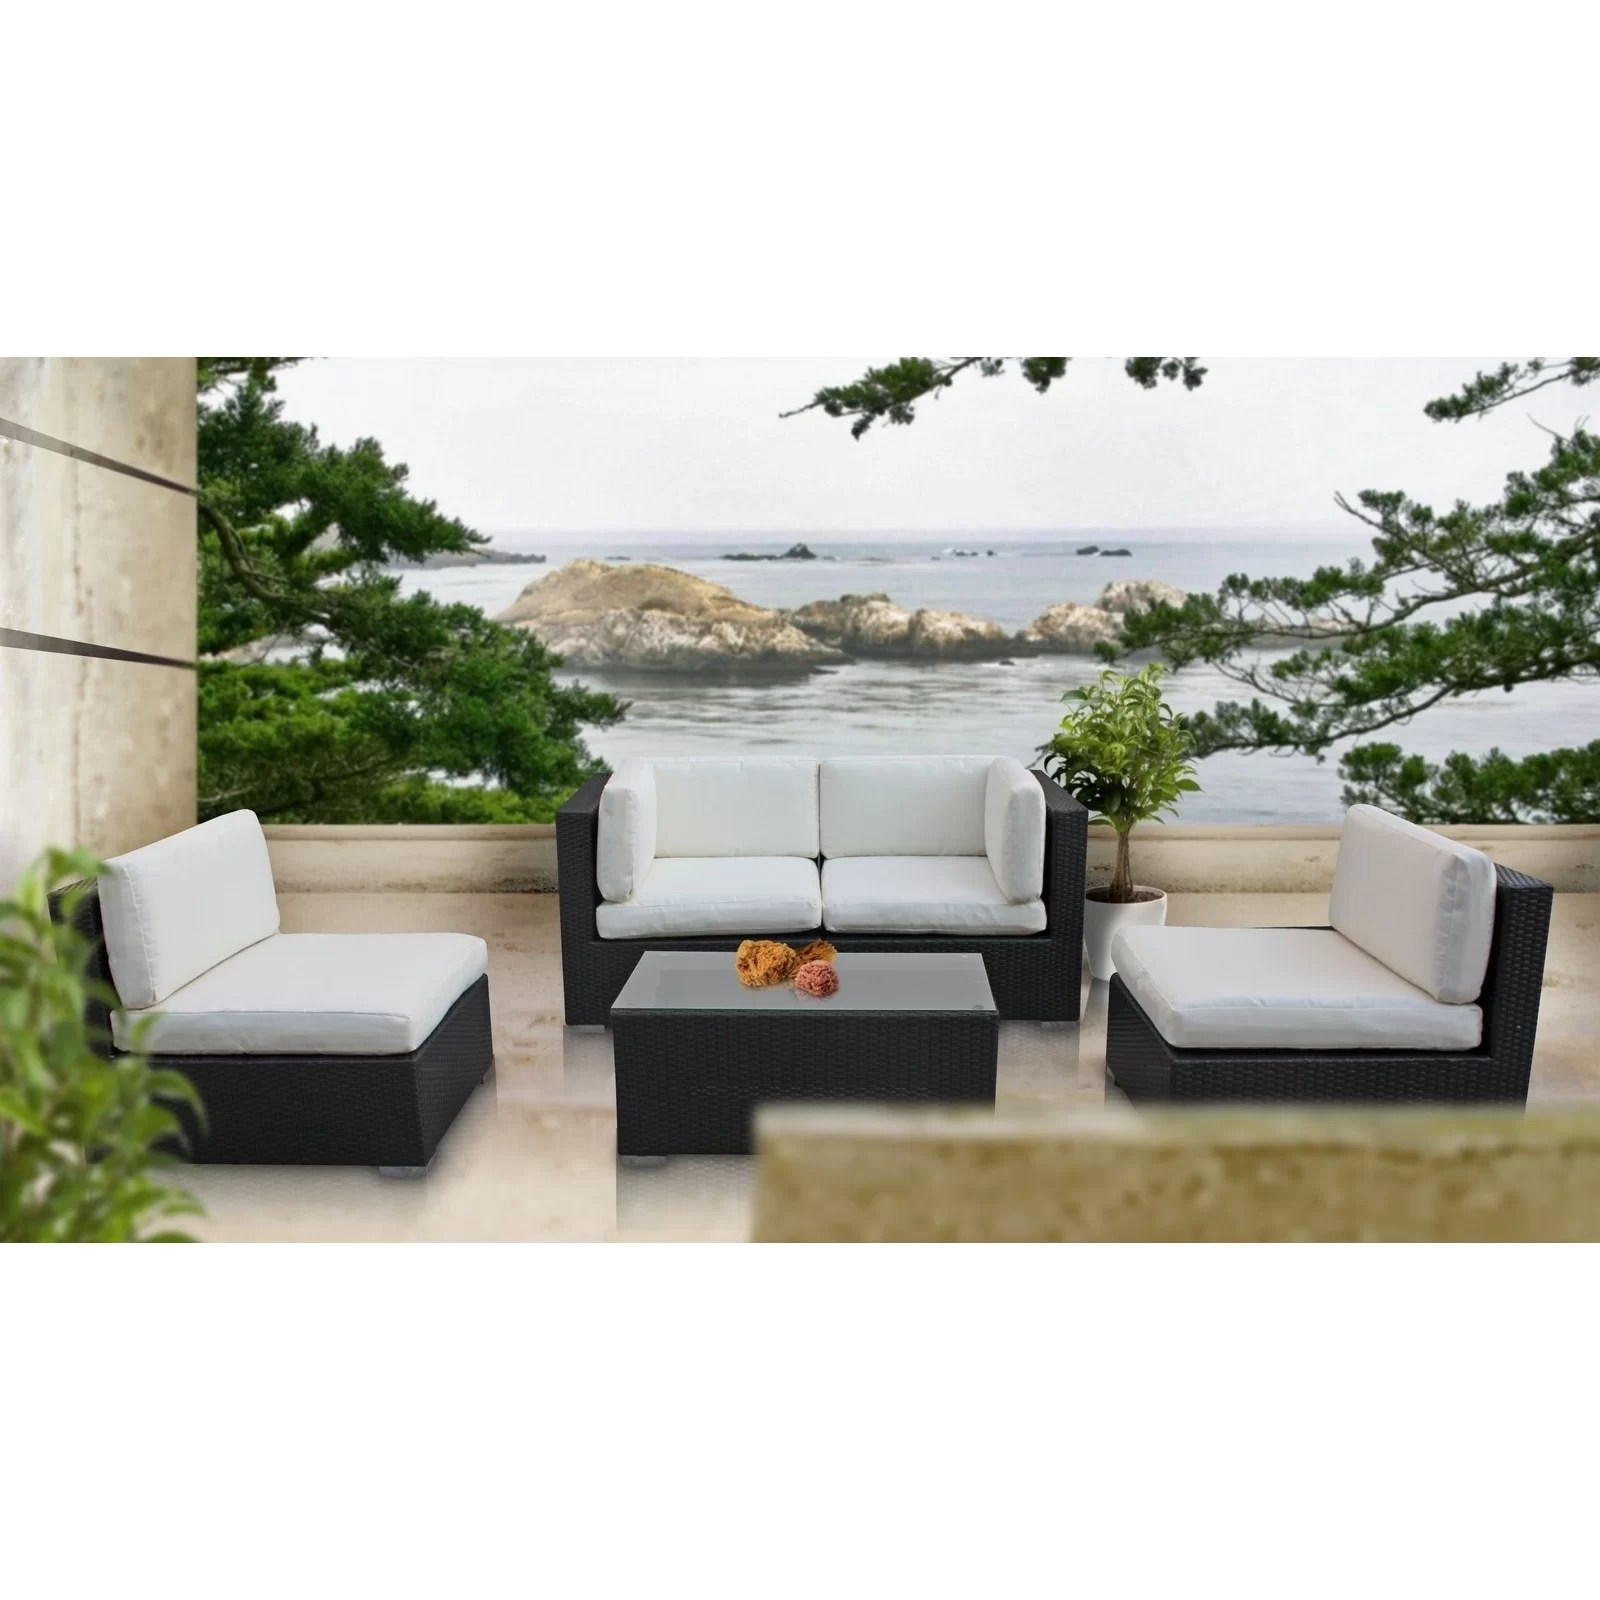 Modway Delight 5 Piece Outdoor Patio Sectional Set ... on 5 Piece Sectional Patio Set id=55061